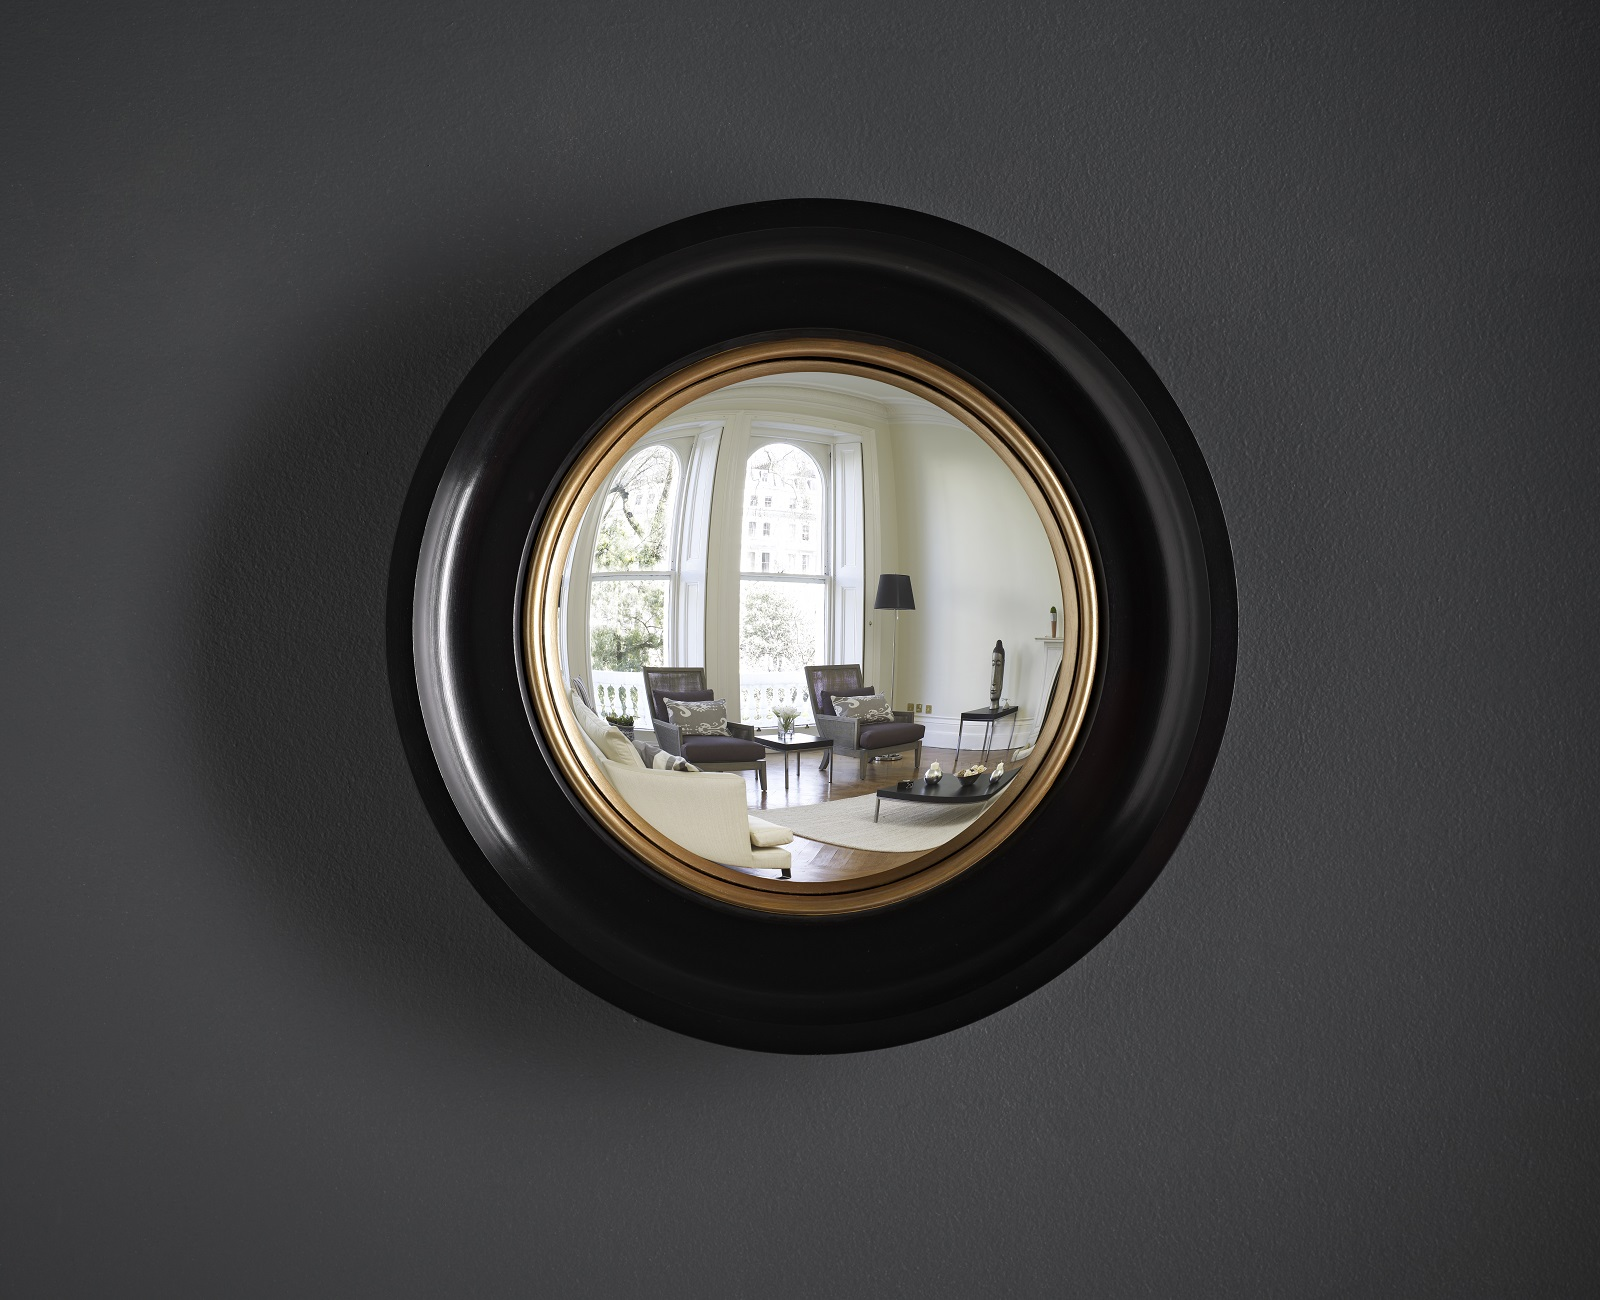 Small Black Decorative Mirrors: Adding Interest To A Mirror Frame With Gilding